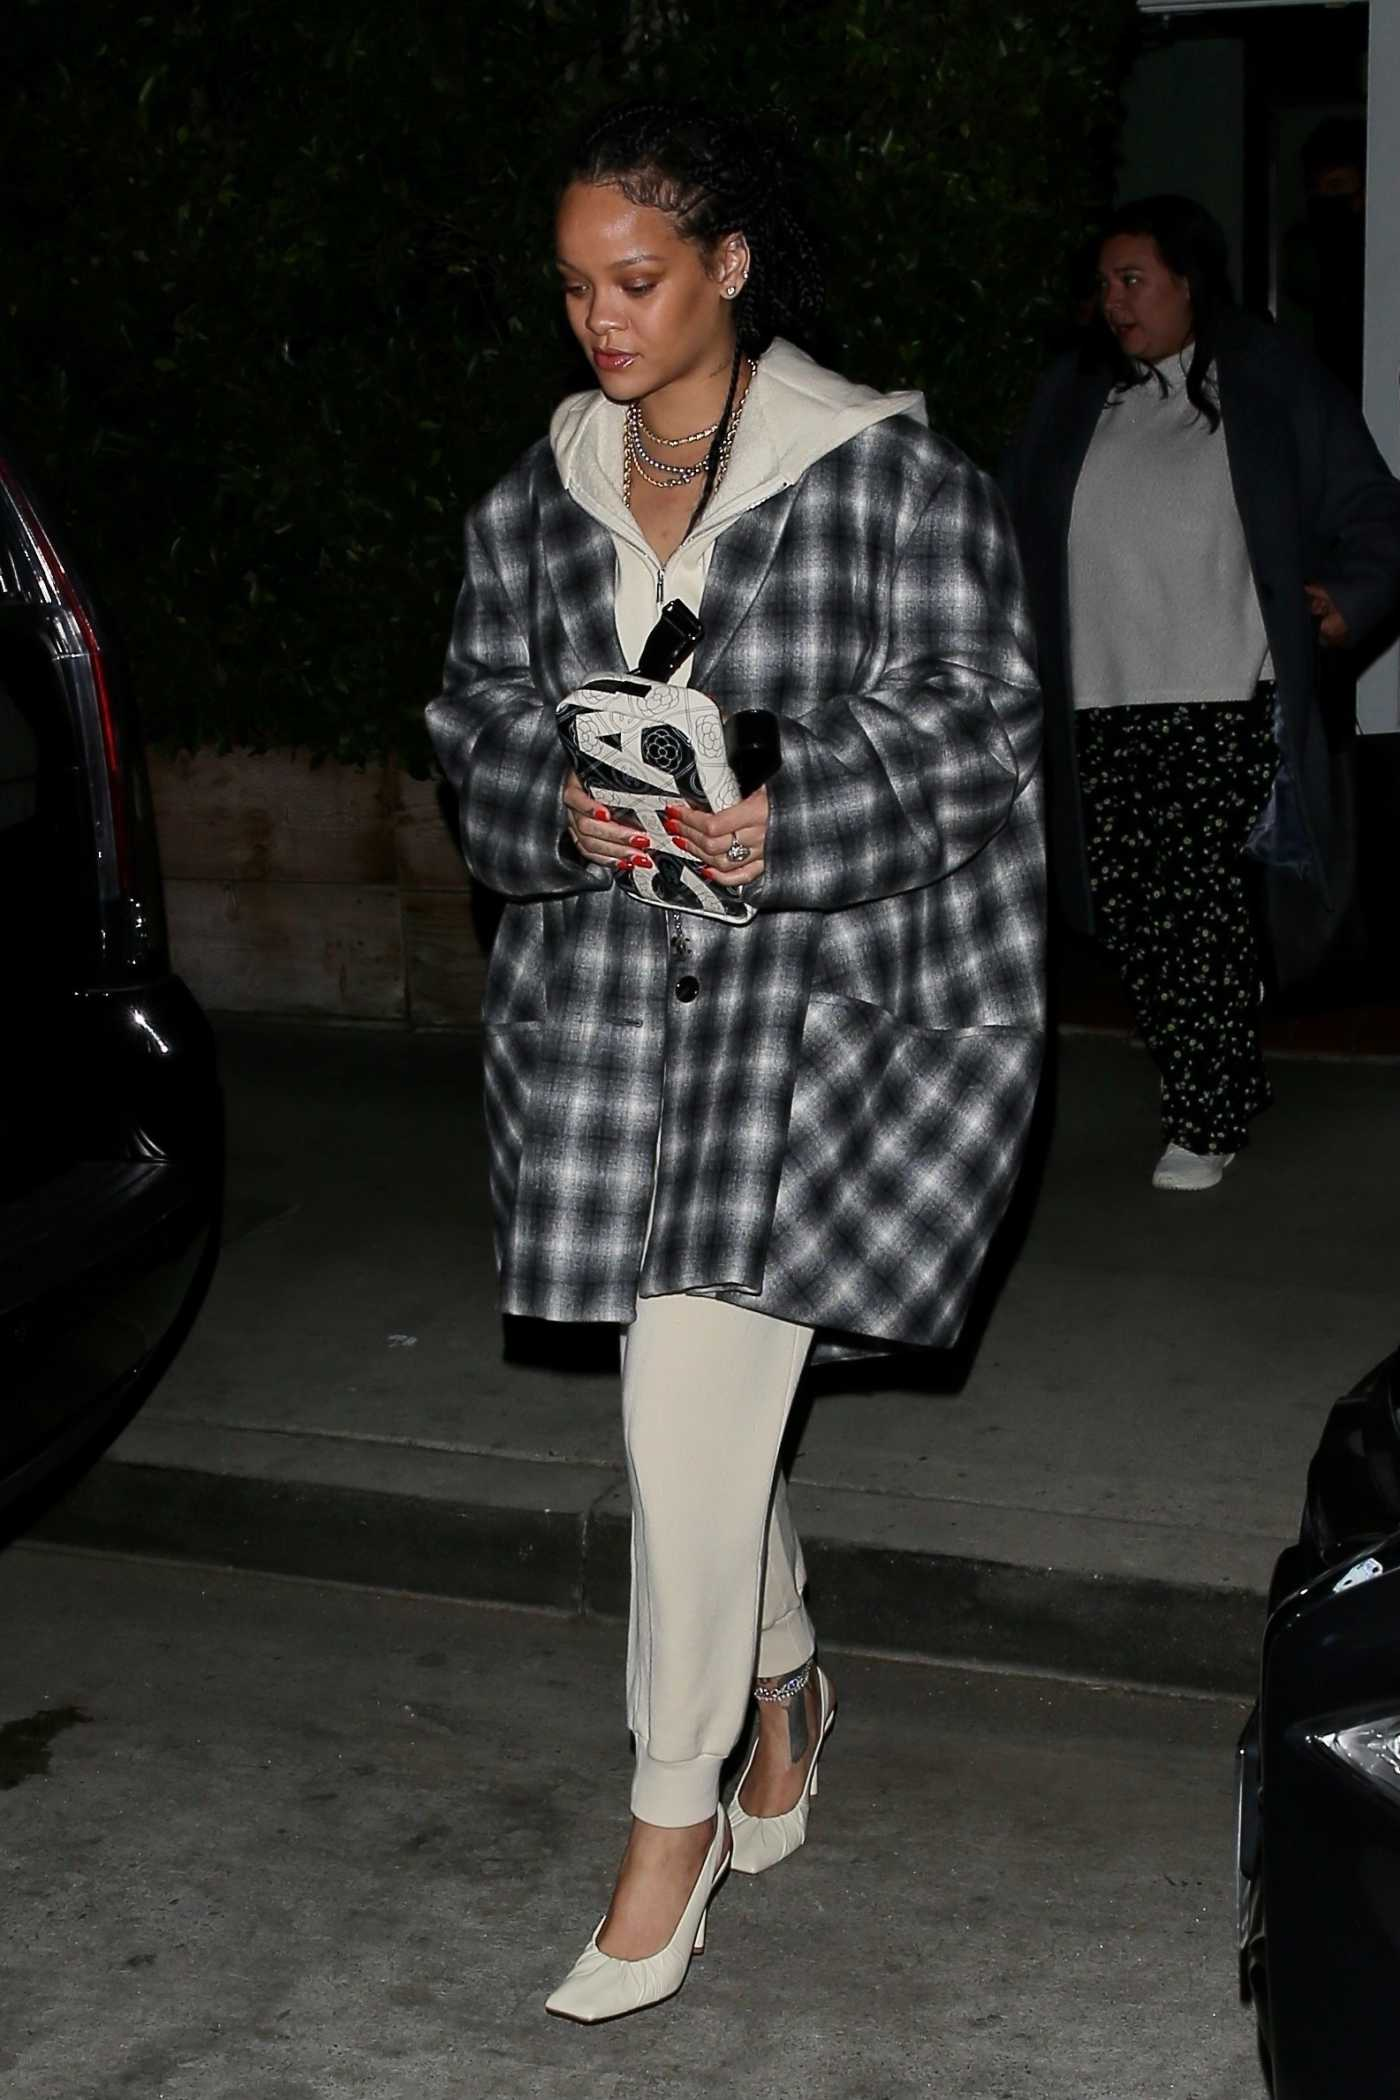 Rihanna in a Plaid Coat Leaves Giorgio Baldi Restaurant in Santa Monica 11/12/2020